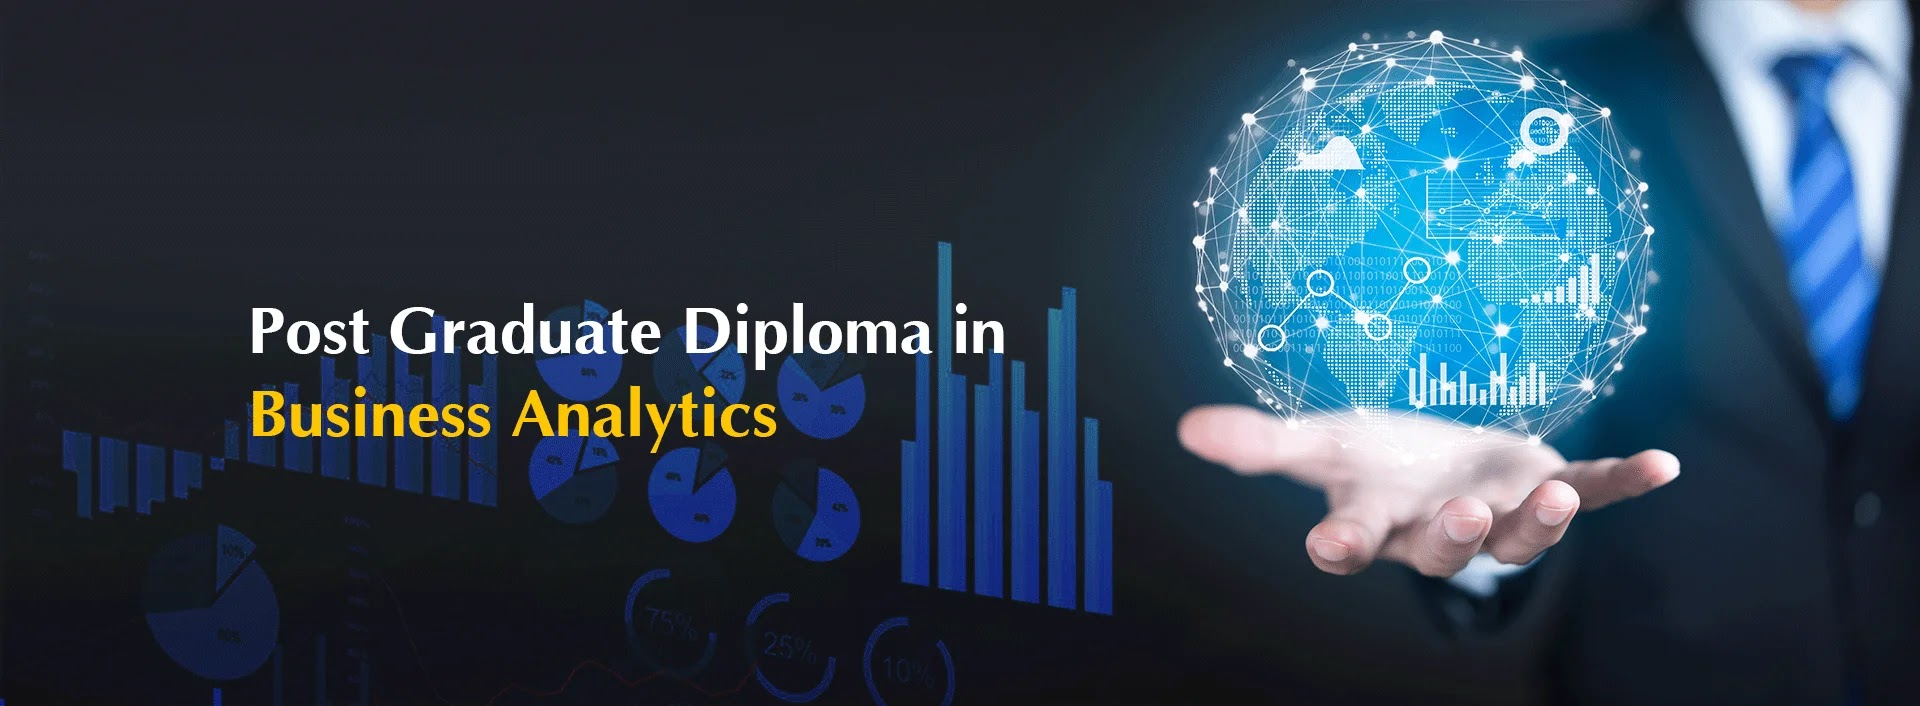 Best Online PG Diploma in Business Analytics Program